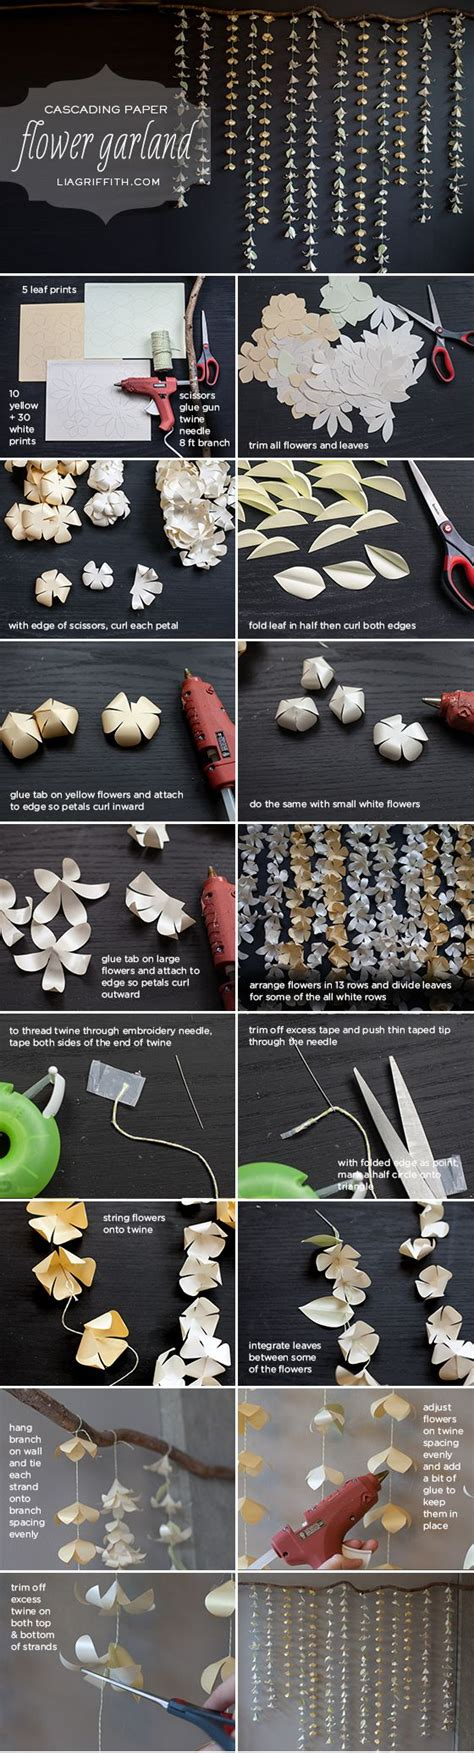 Paper Flower Garland Tutorial | cascading paper flower garland tutorial paper flower